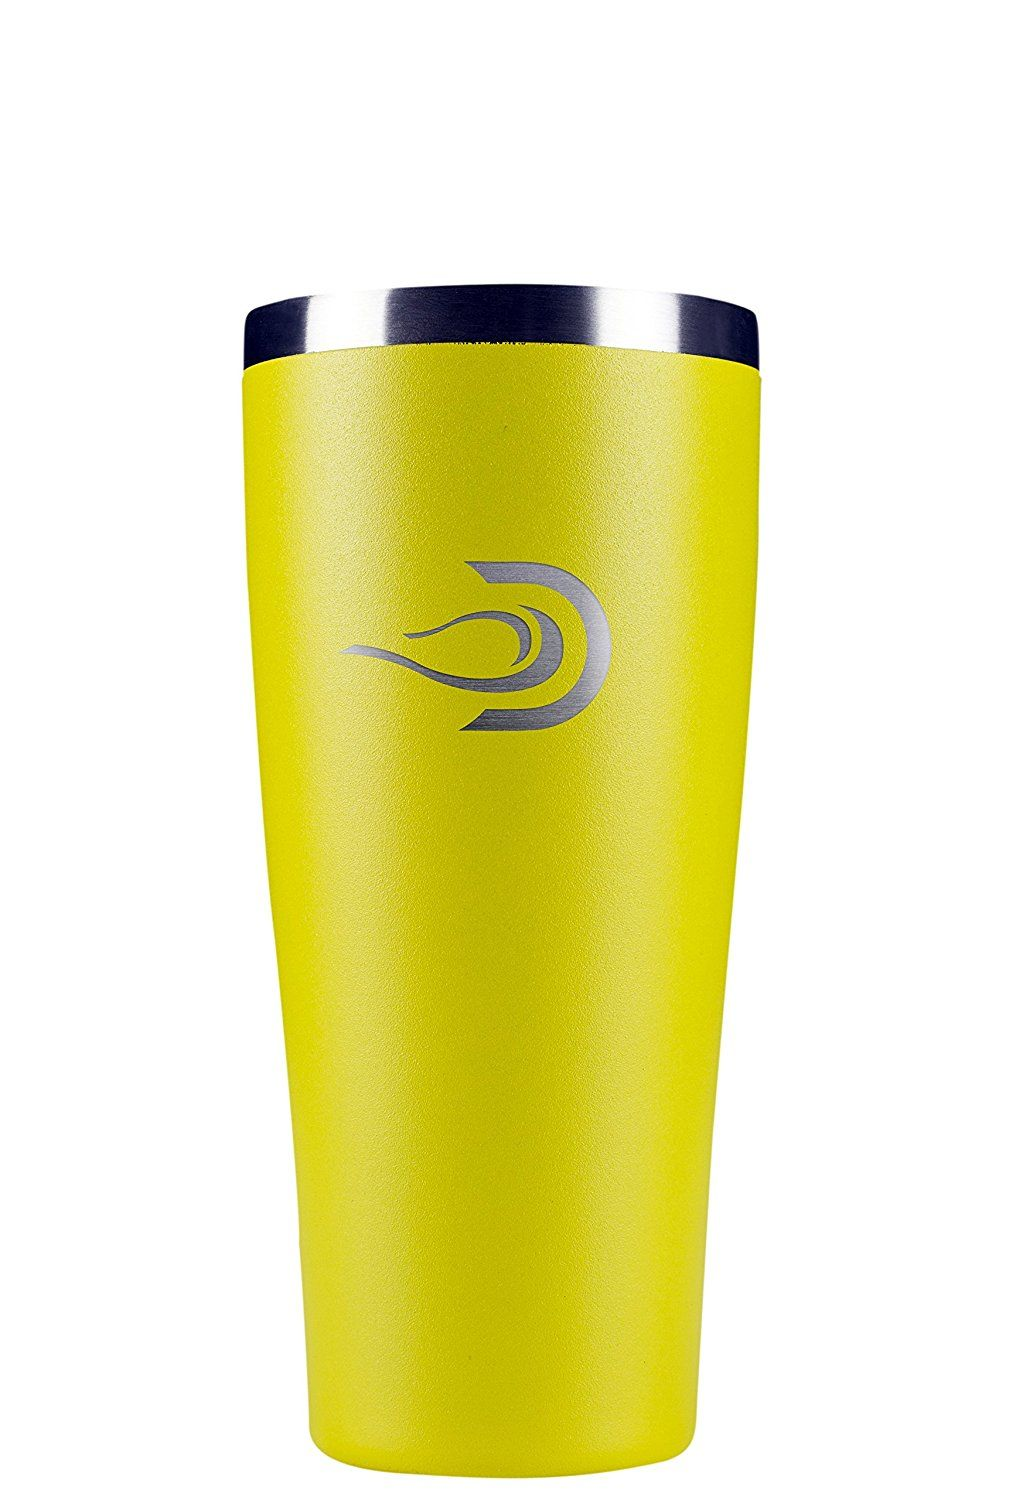 DrinkTanks Vacuum Insulated Stainless Steel Cup, 20 oz